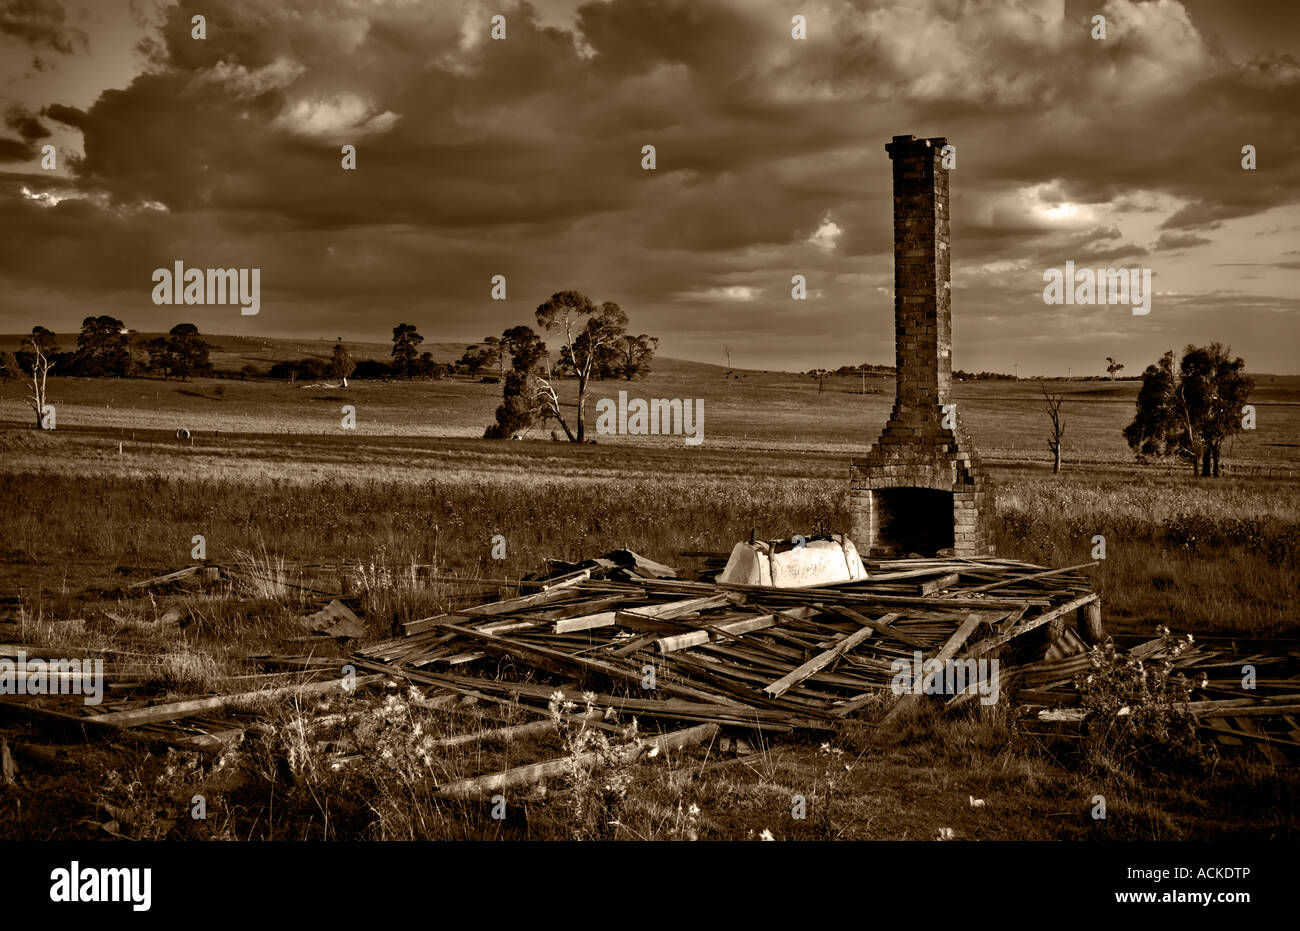 huff n puff sepia image of when a dark storm comes over the fallen down ruins on the farm Stock Photo